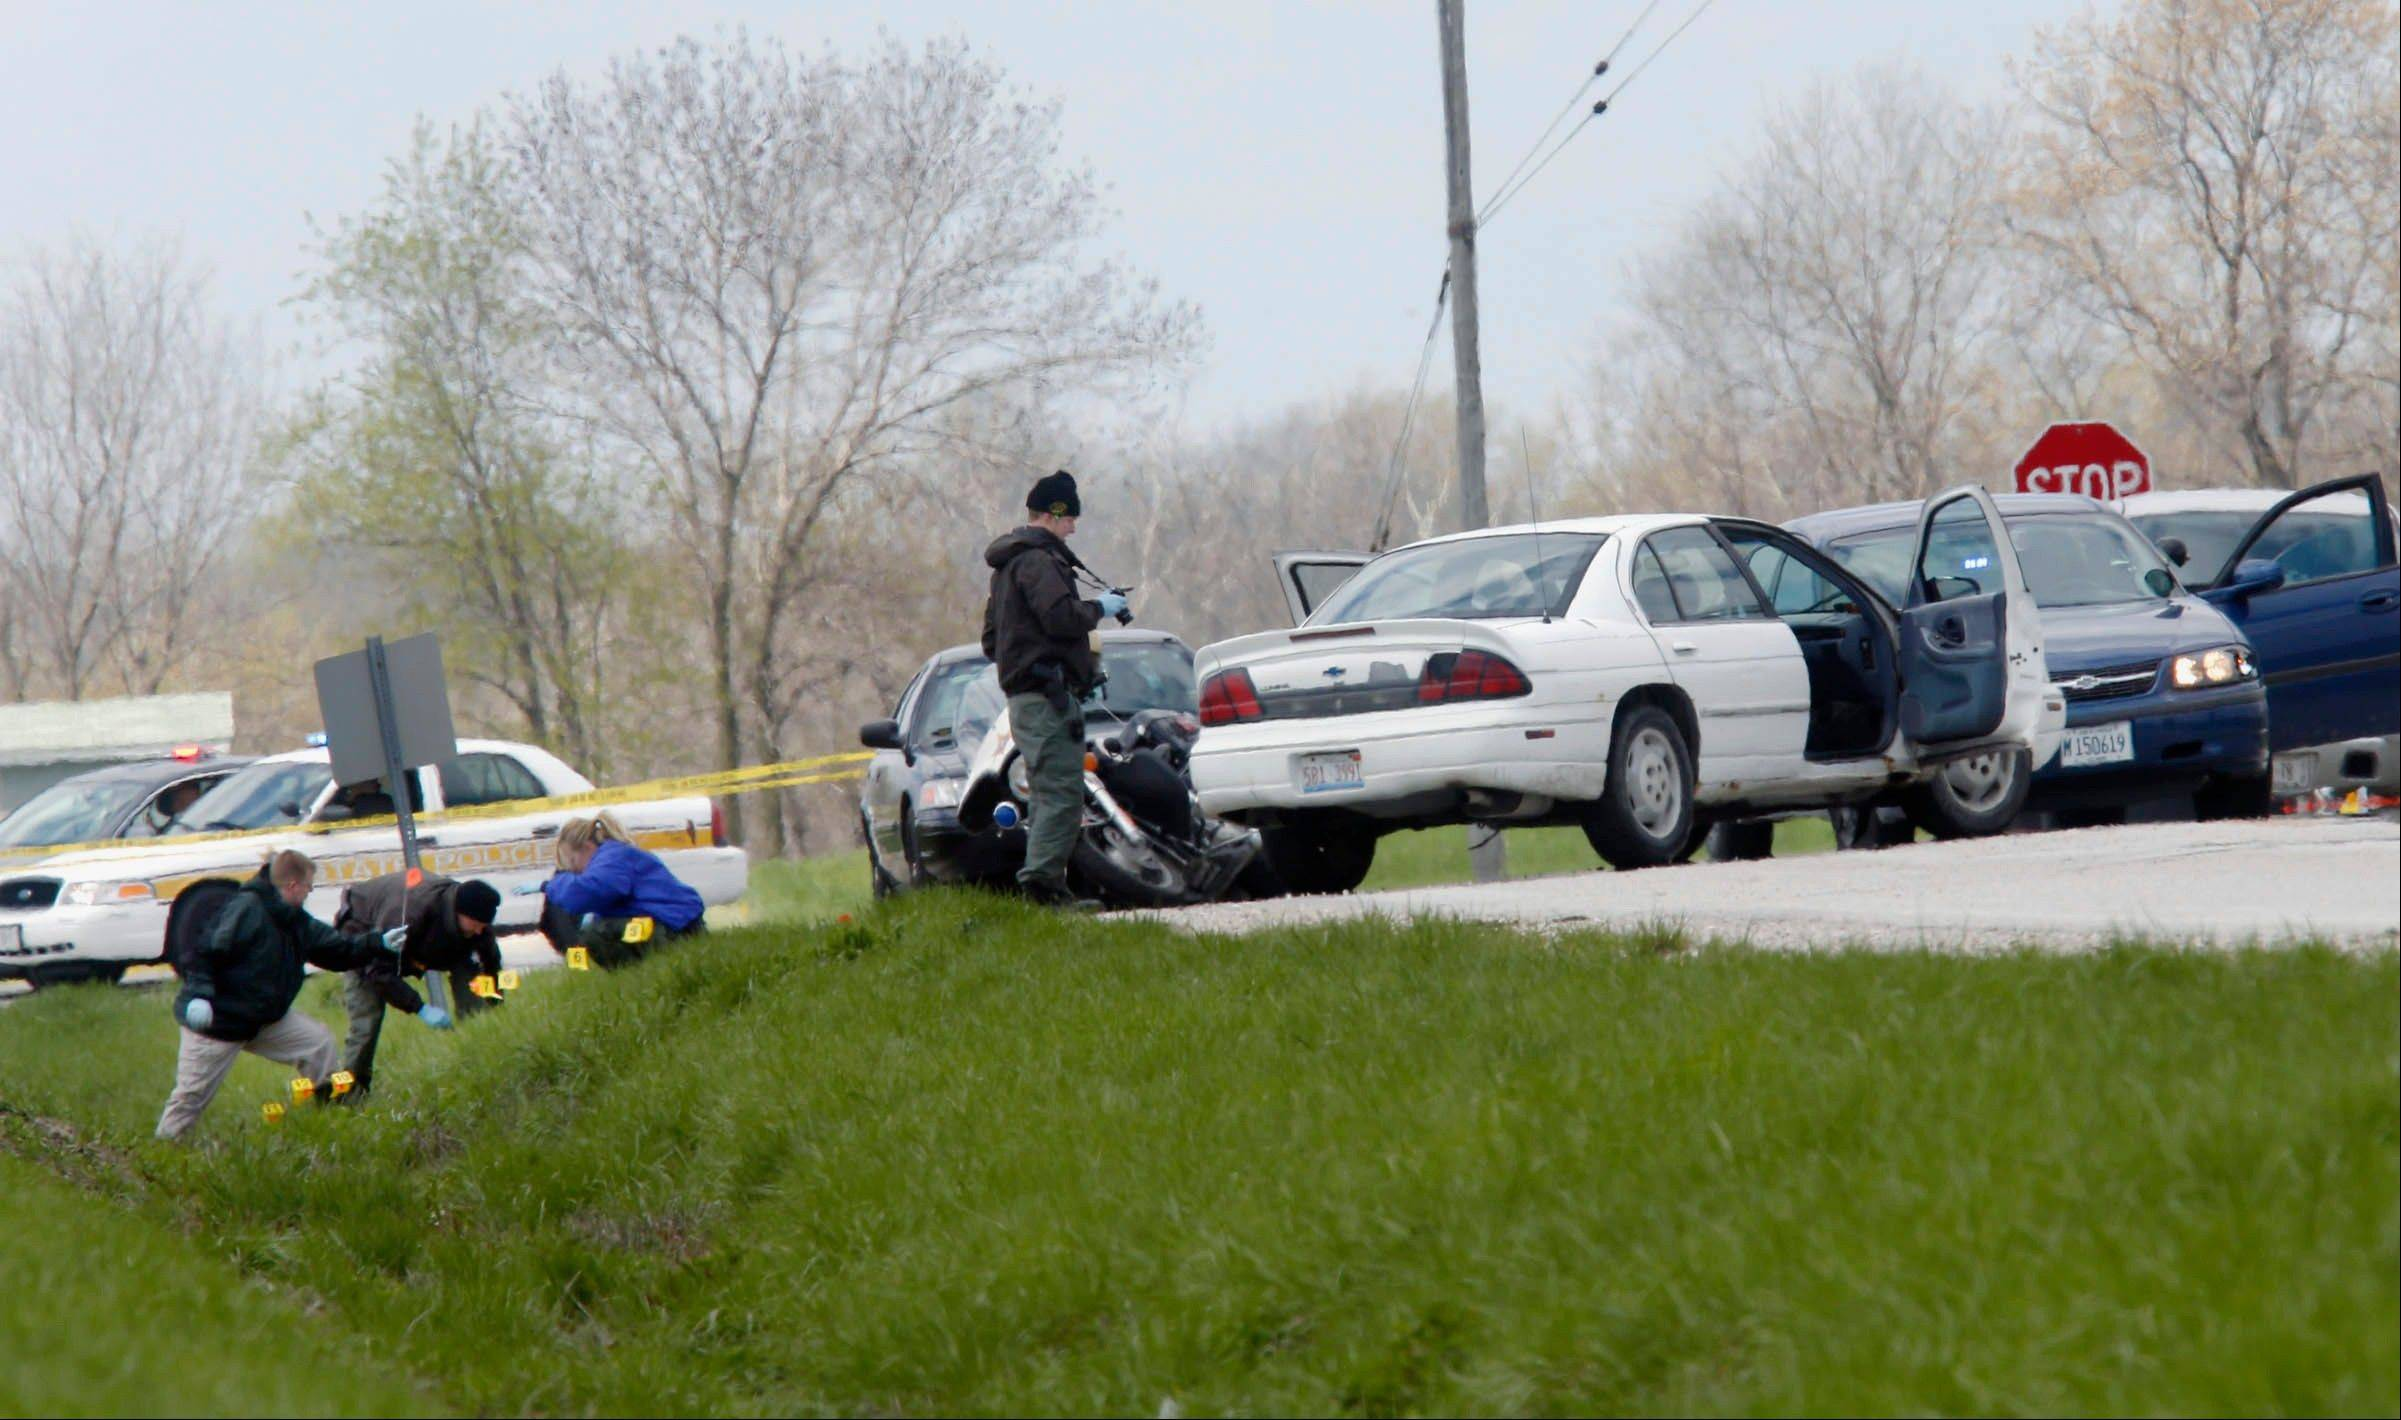 Illinois State Police process the scene Wednesday near Winchester, where a suspect wanted in the deaths of five people in nearby Manchester, was wounded after a car chase and an exchange of gunfire with law enforcement. The suspect, who was driving the white sedan, died later at a hospital.